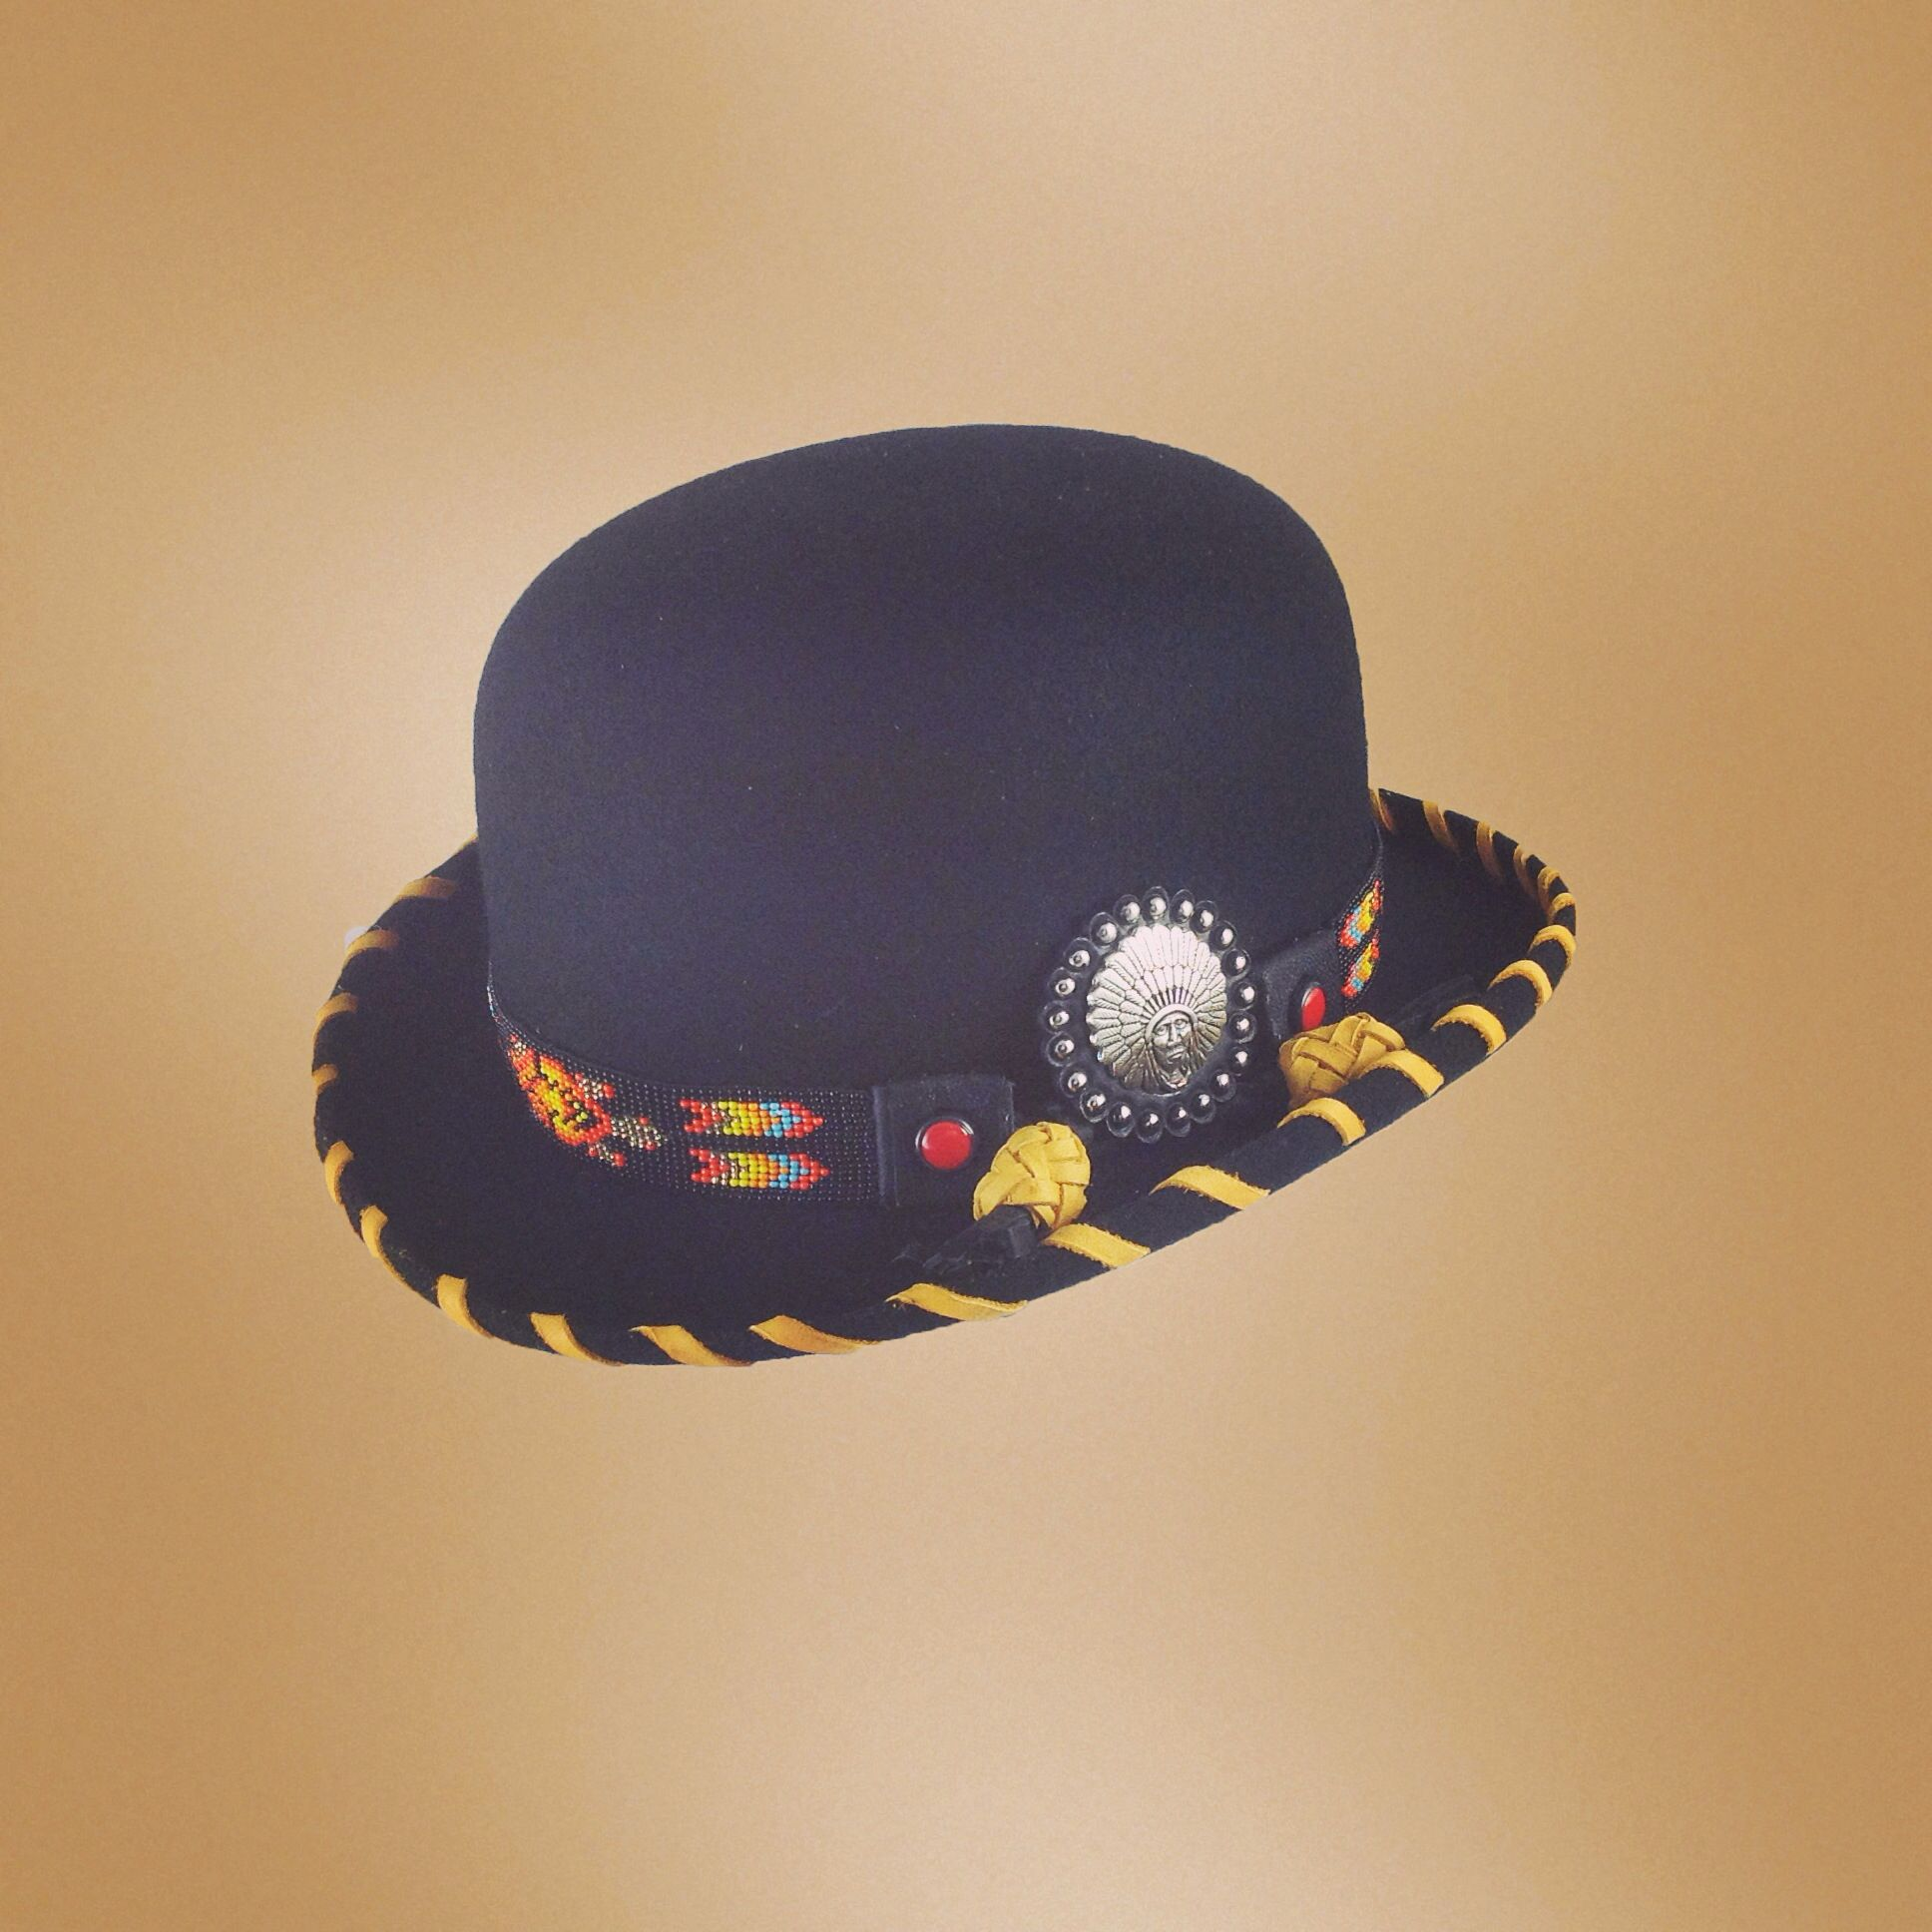 d4e3133249b Black Felt Bowler hat with beaded hatband and indian Concho by Red Star  Riggings. -  CowgirlChic